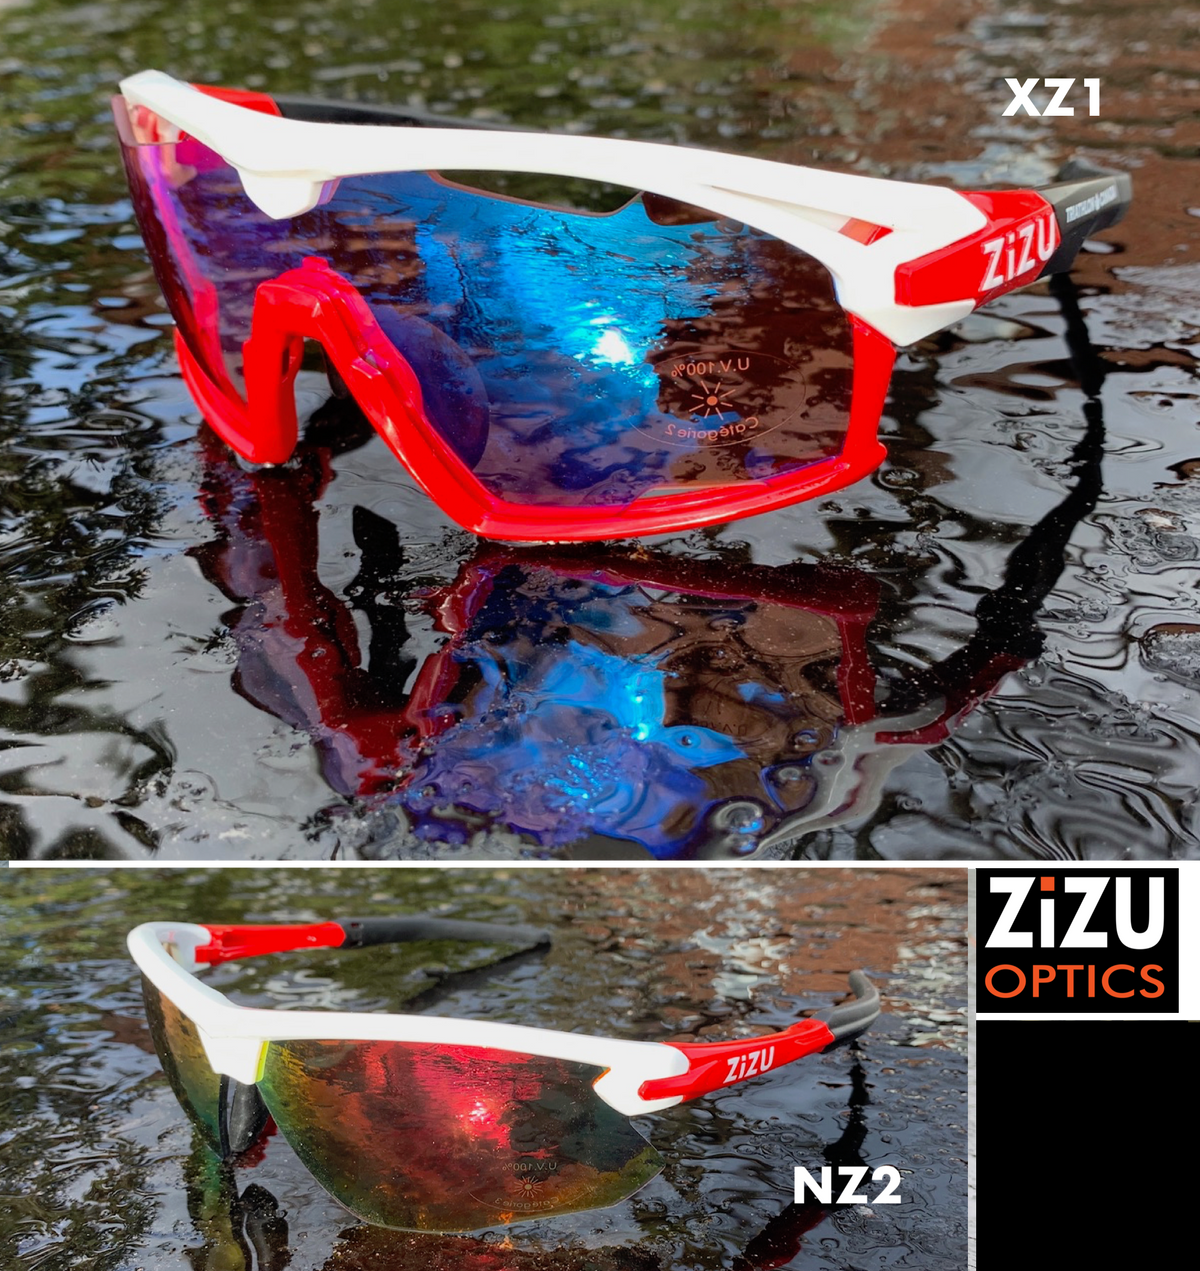 XZ1 - CKC White/Red with Red Revo Lens + Bonus NZ2 White/Red